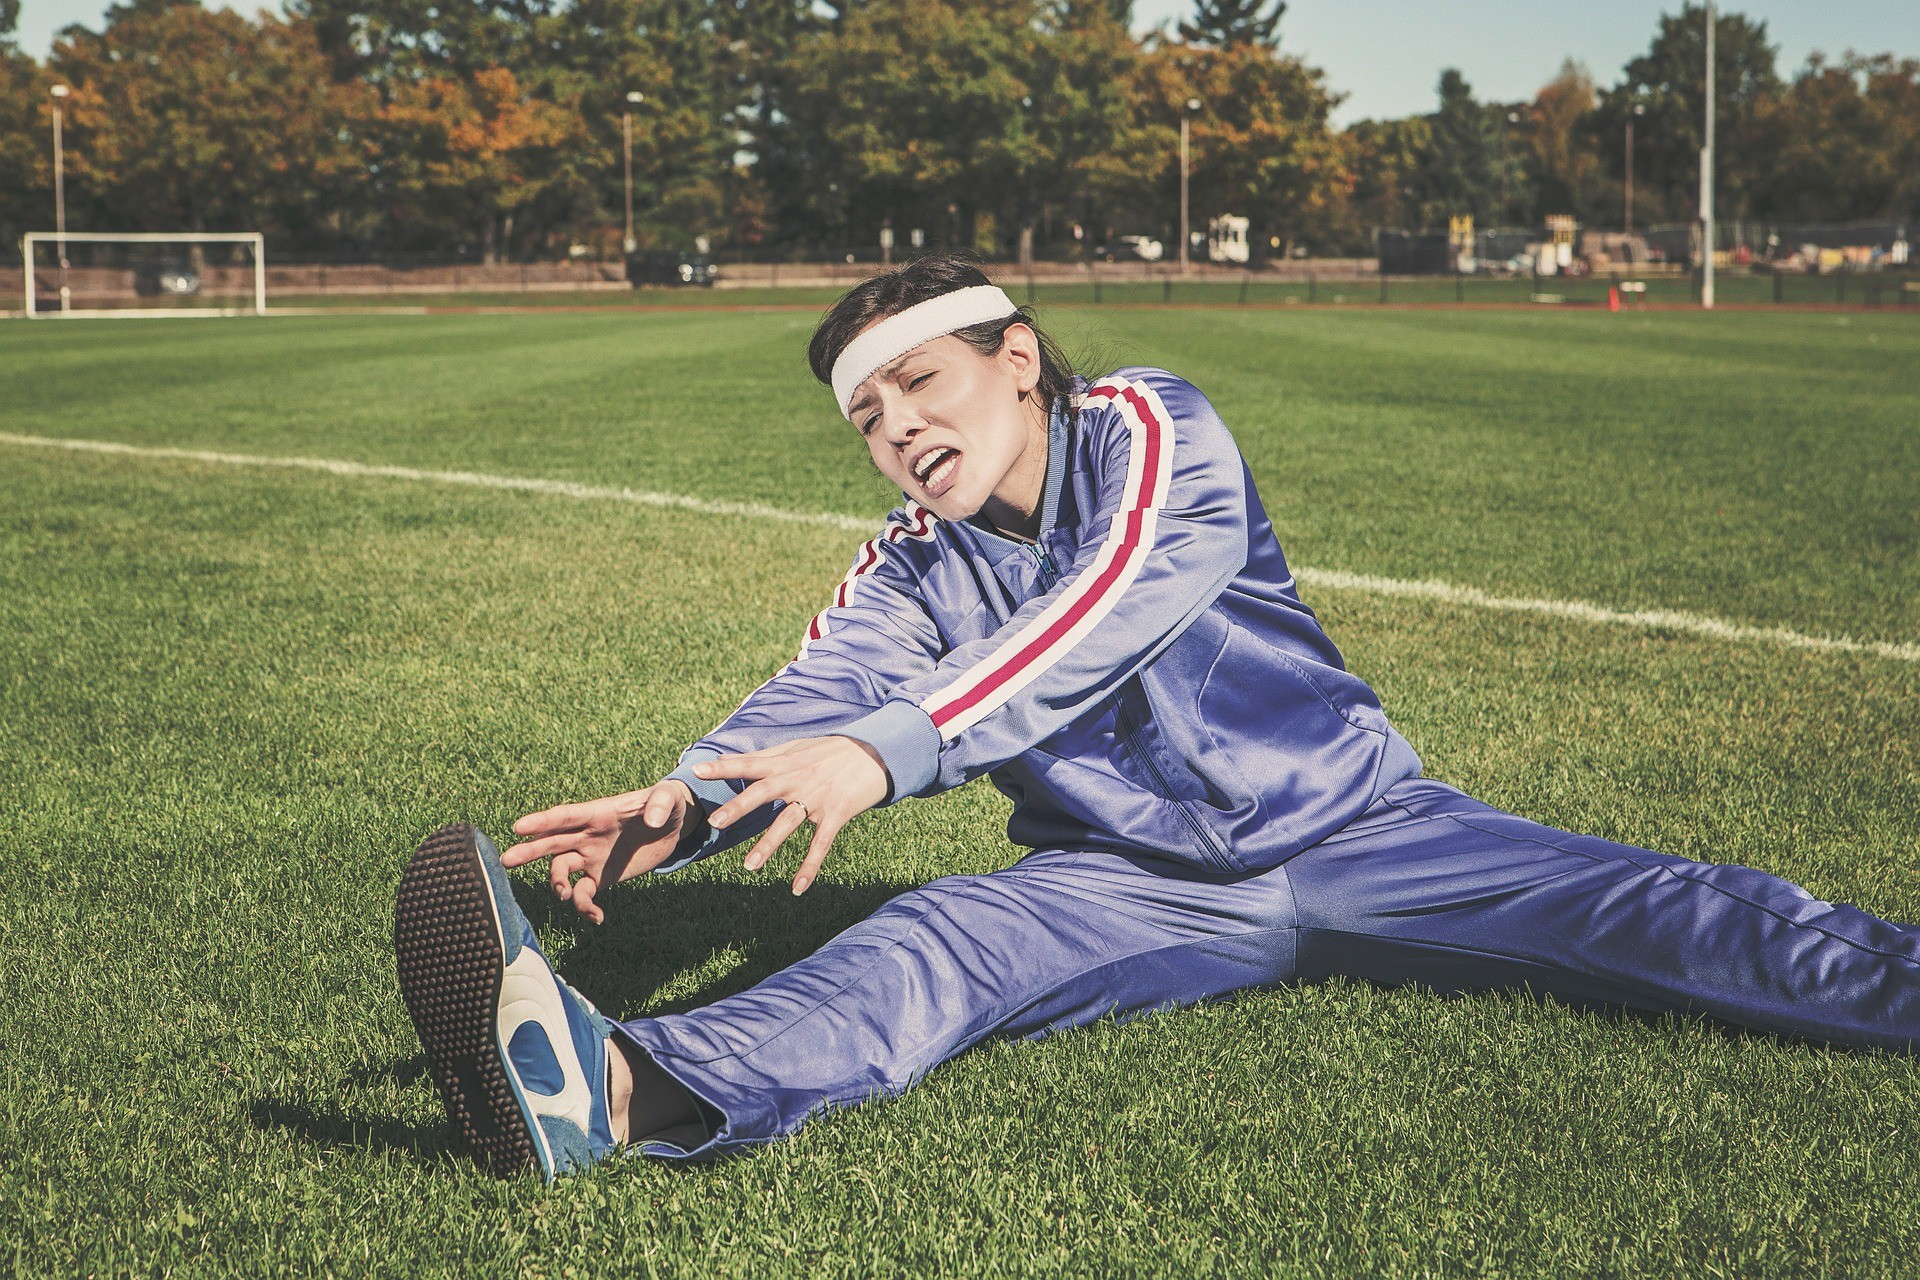 What are your thoughts on exercise?